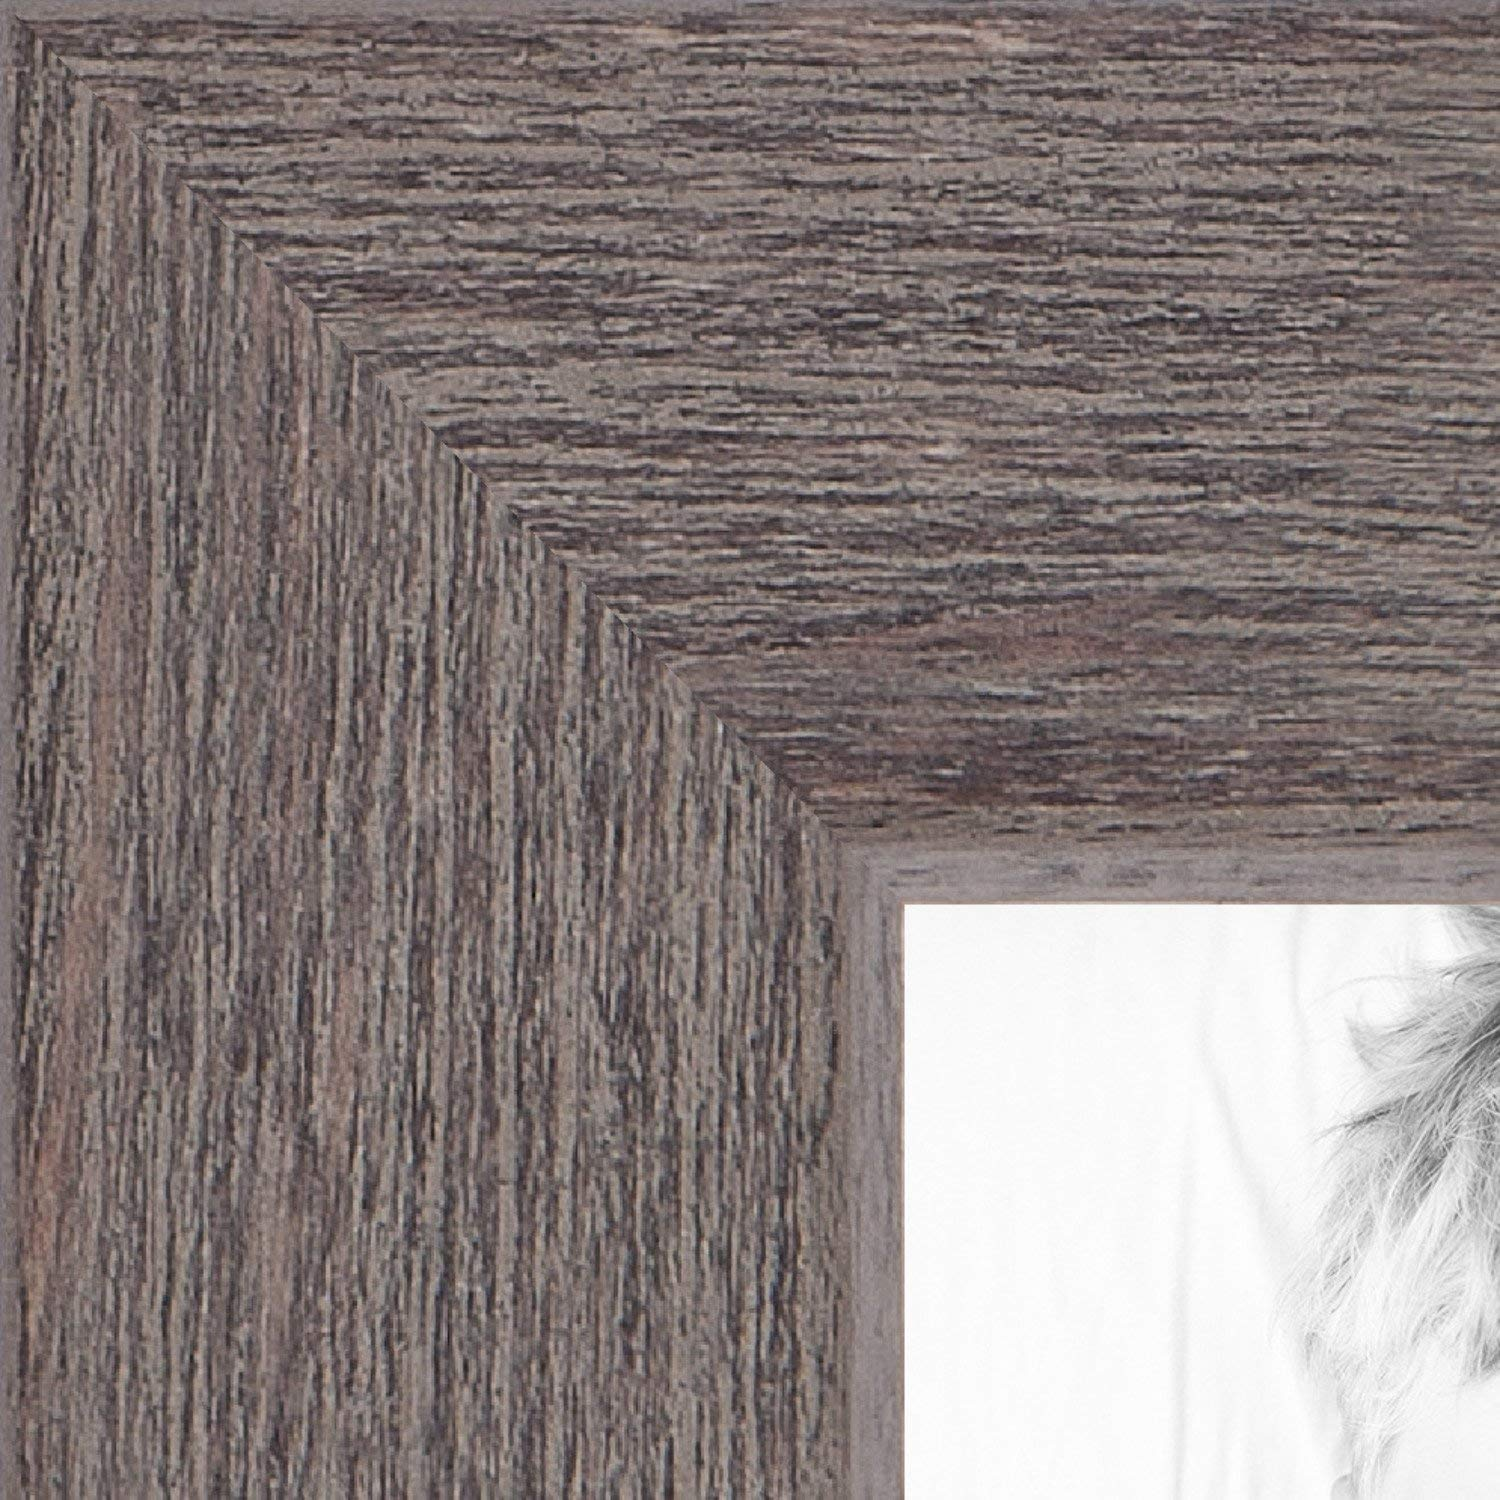 ArtToFrames 14x17 inch Gray Rustic Barnwood Wood Picture Frame, 2WOM0066-77900-YGRY-14x17, 14 x 17'',